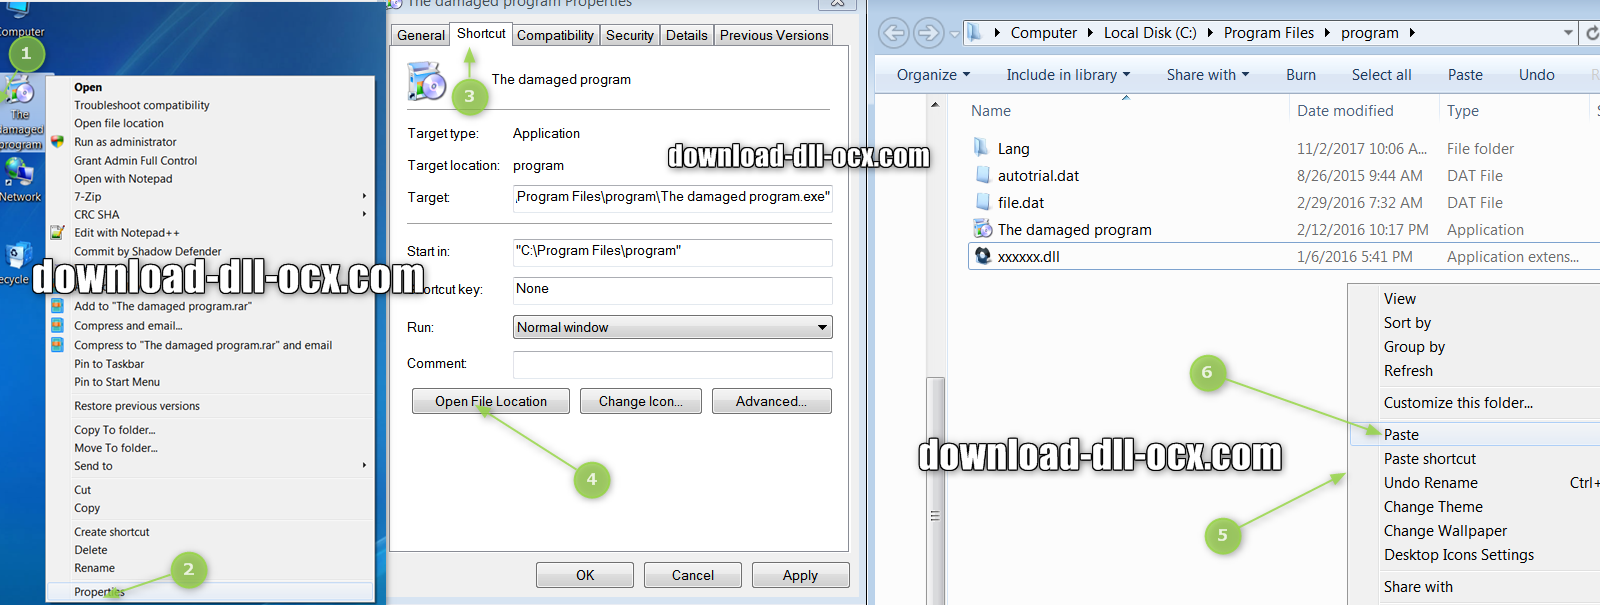 how to install AocCache.dll file? for fix missing